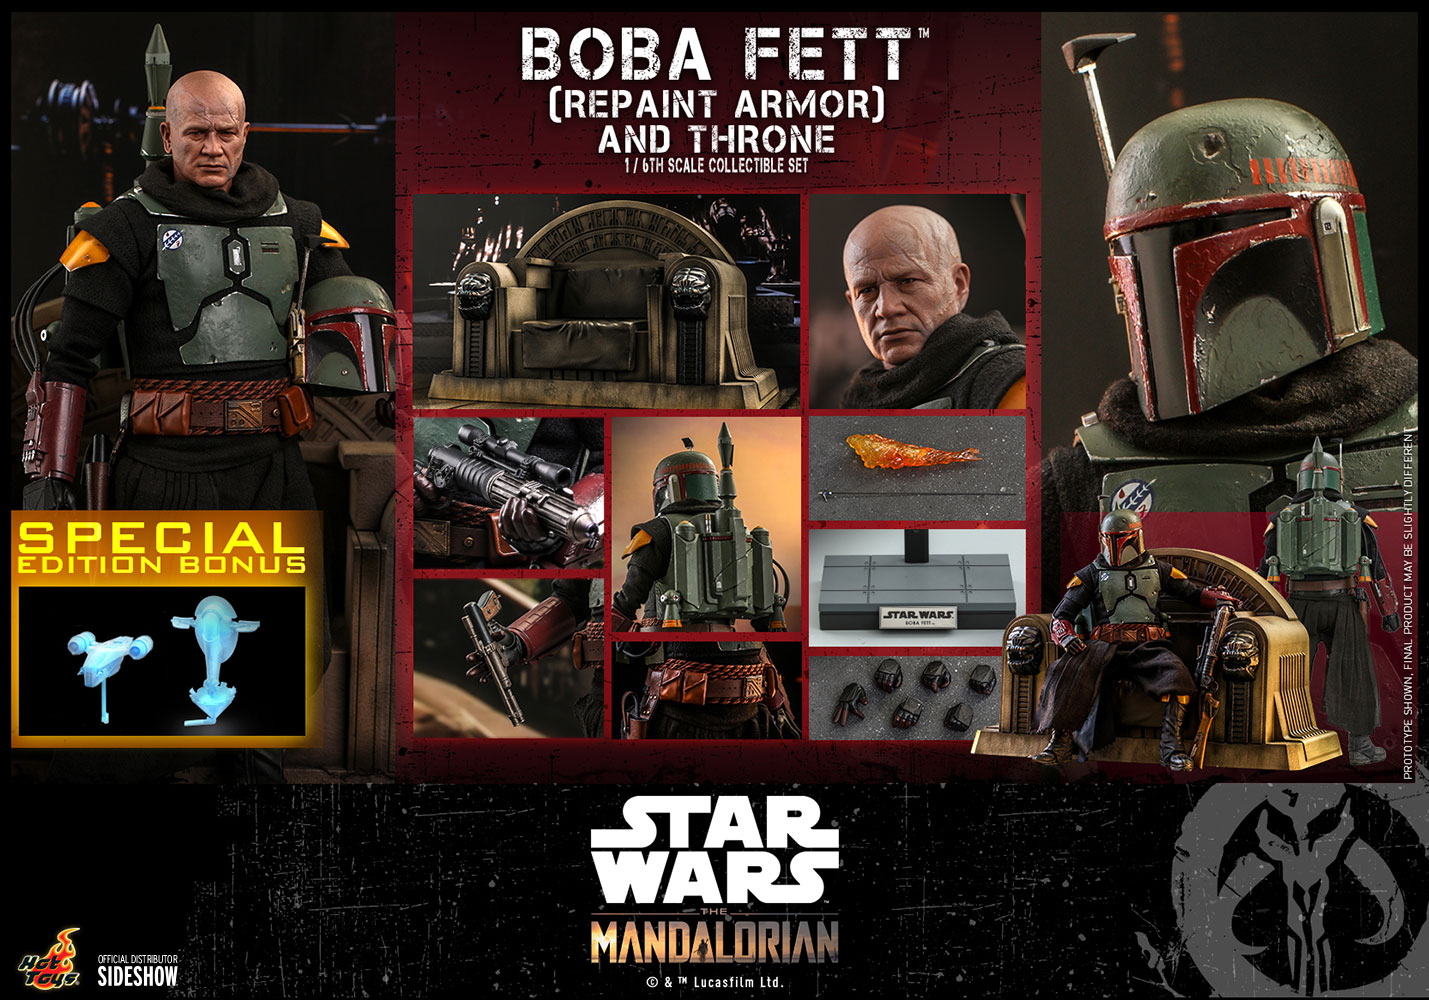 boba-fett-repaint-armor-special-edition-and-throne_star-wars_gallery_60ee52ccc64fe.jpg